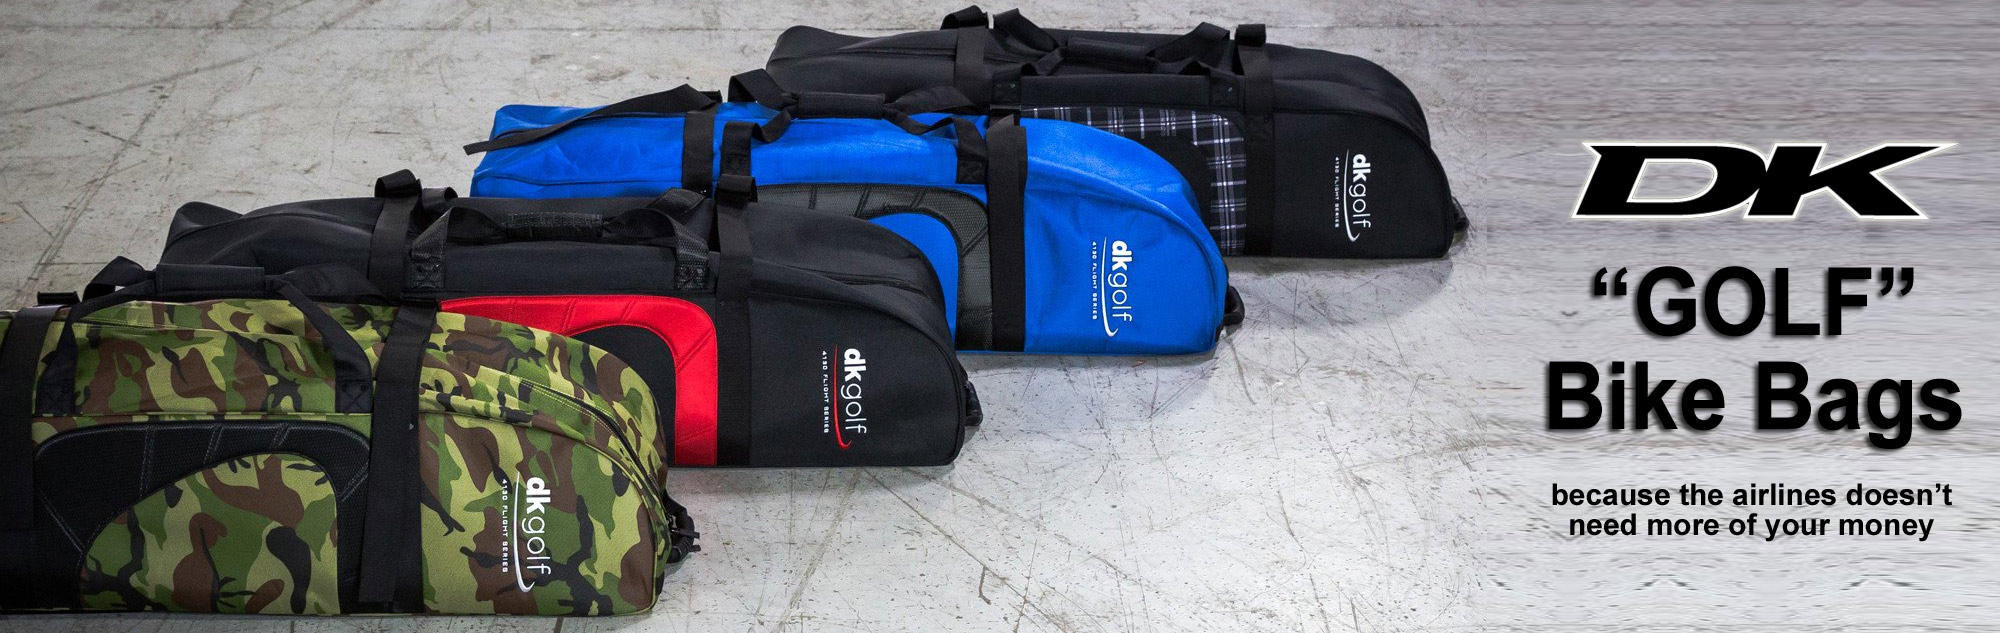 "DK ""Golf"" Bike Travel Bags at Albe's BMX Bike Shop Online"